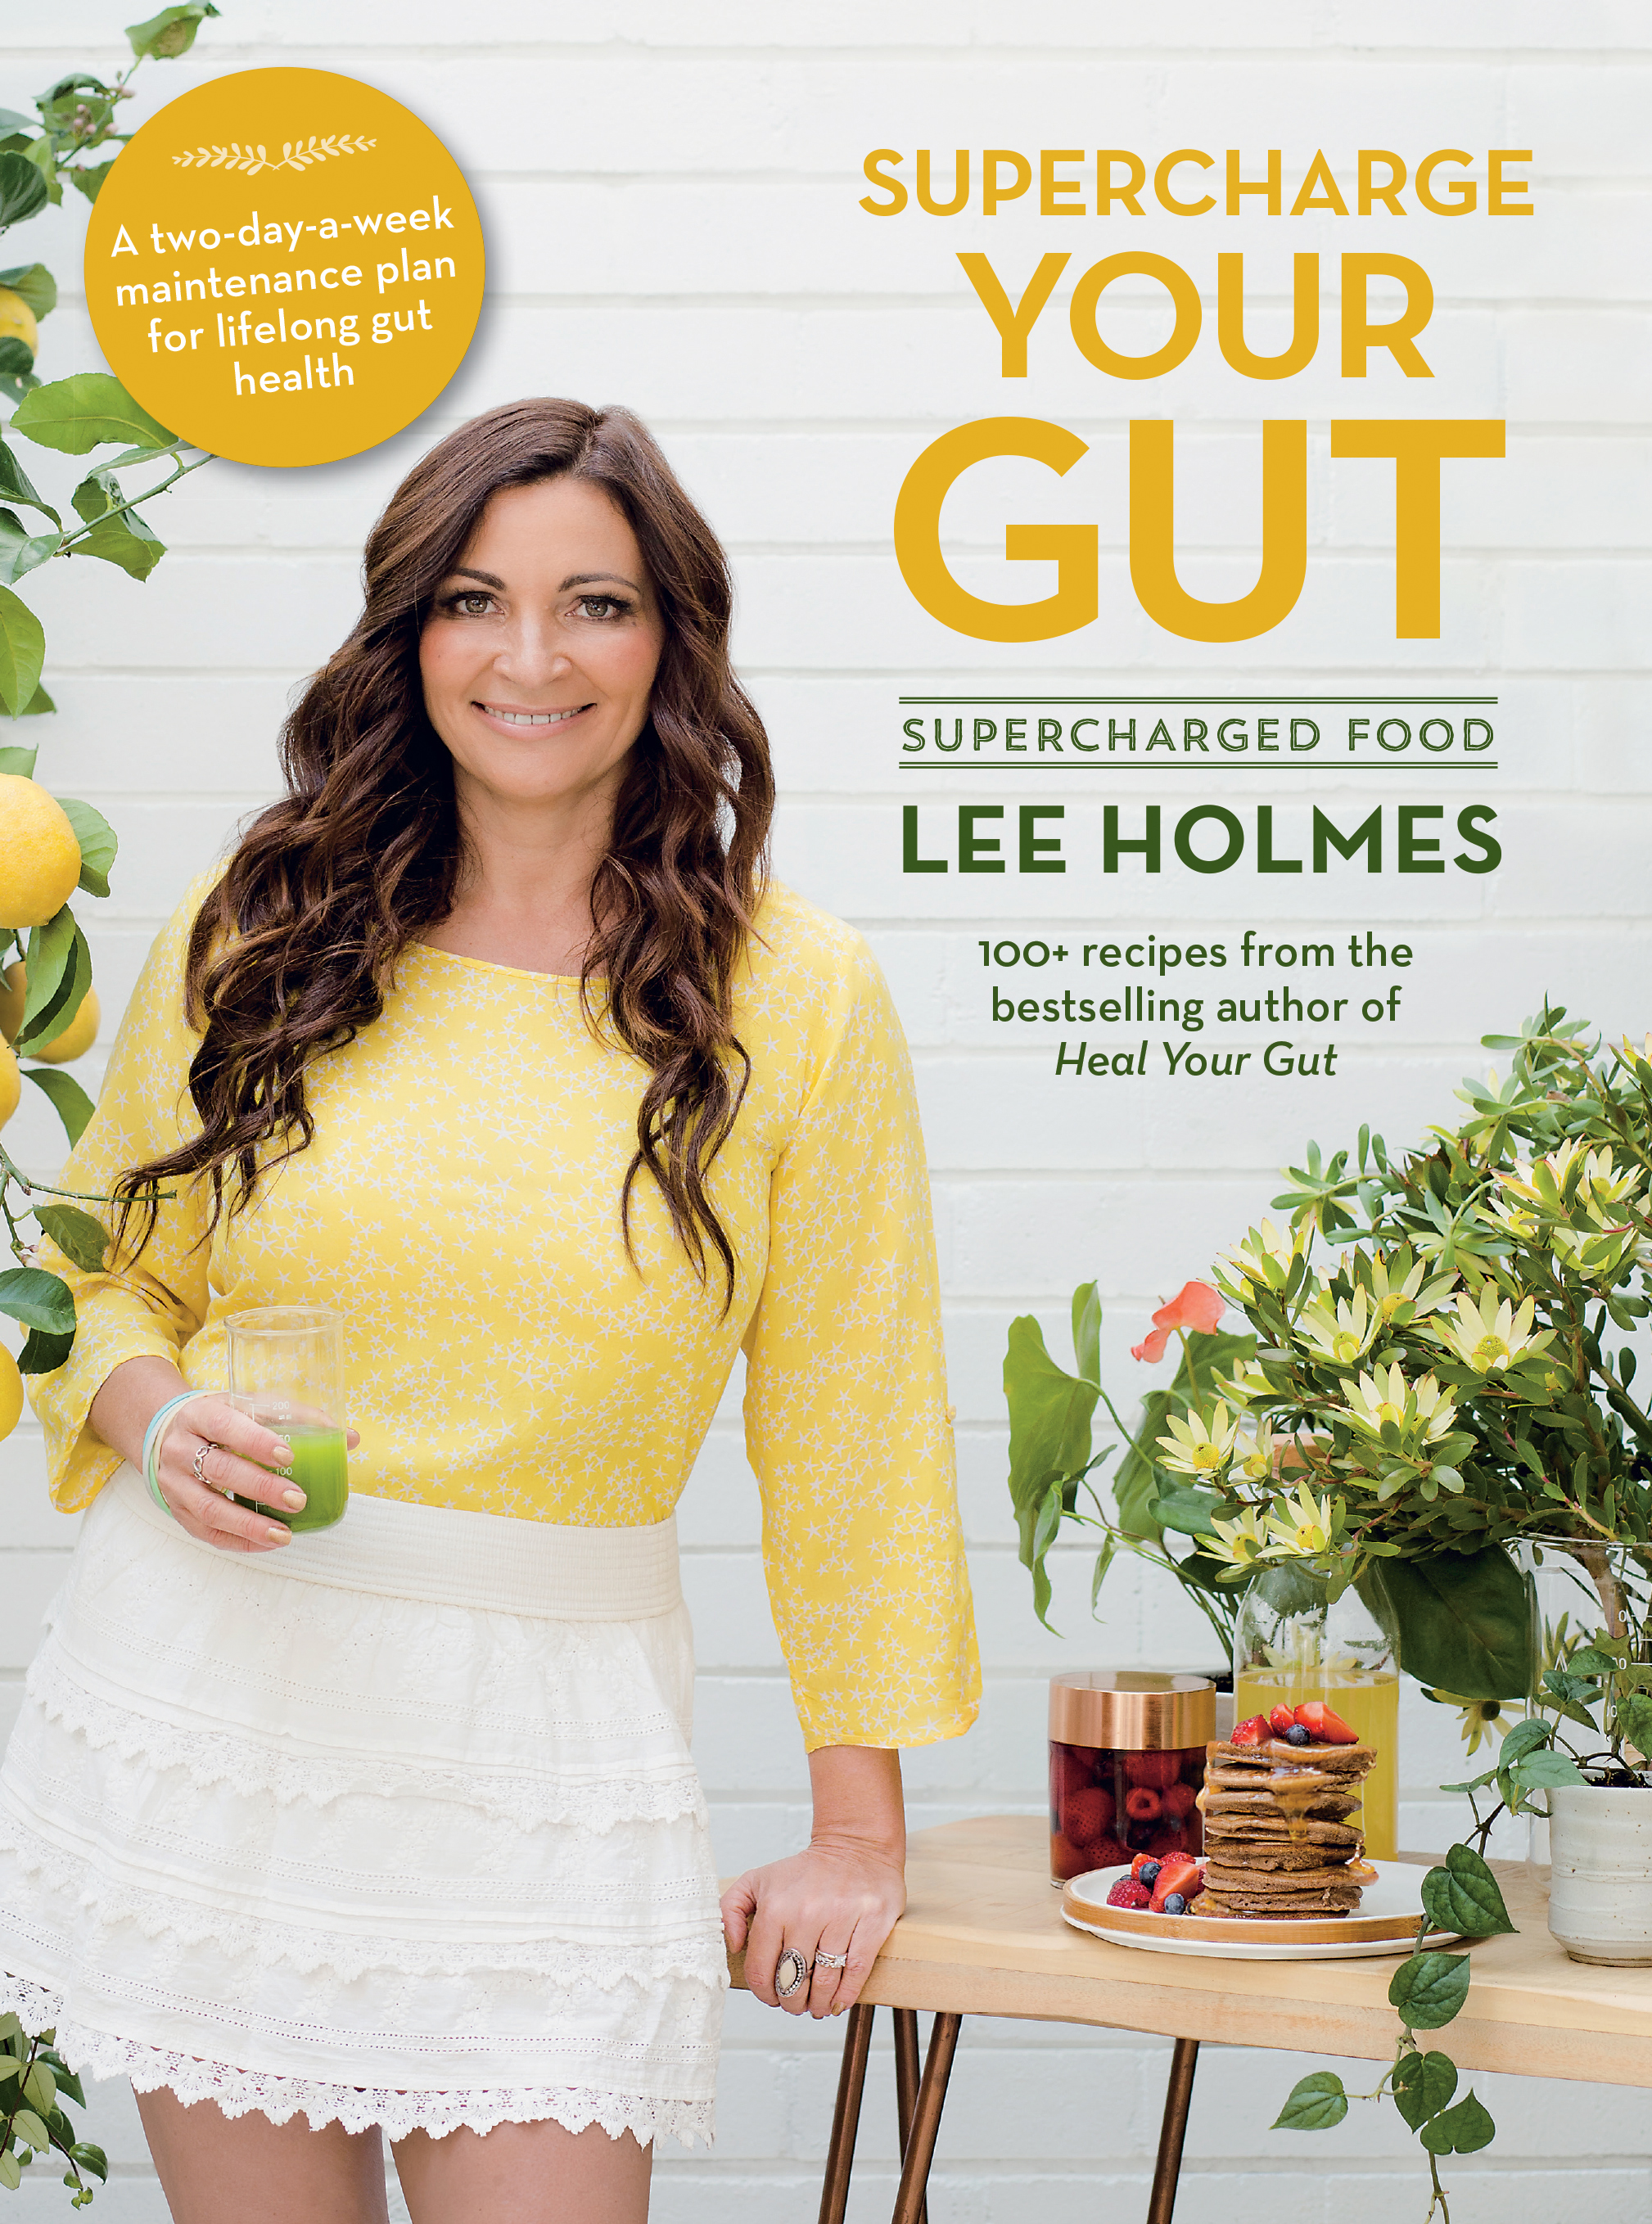 Deliciously Nourishing Recipes Handy Tips And Information To Enable Sexy Dress Scuba Combination Angela You Enjoy The Countless Benefits Of A Happy Healthy Gut For Life